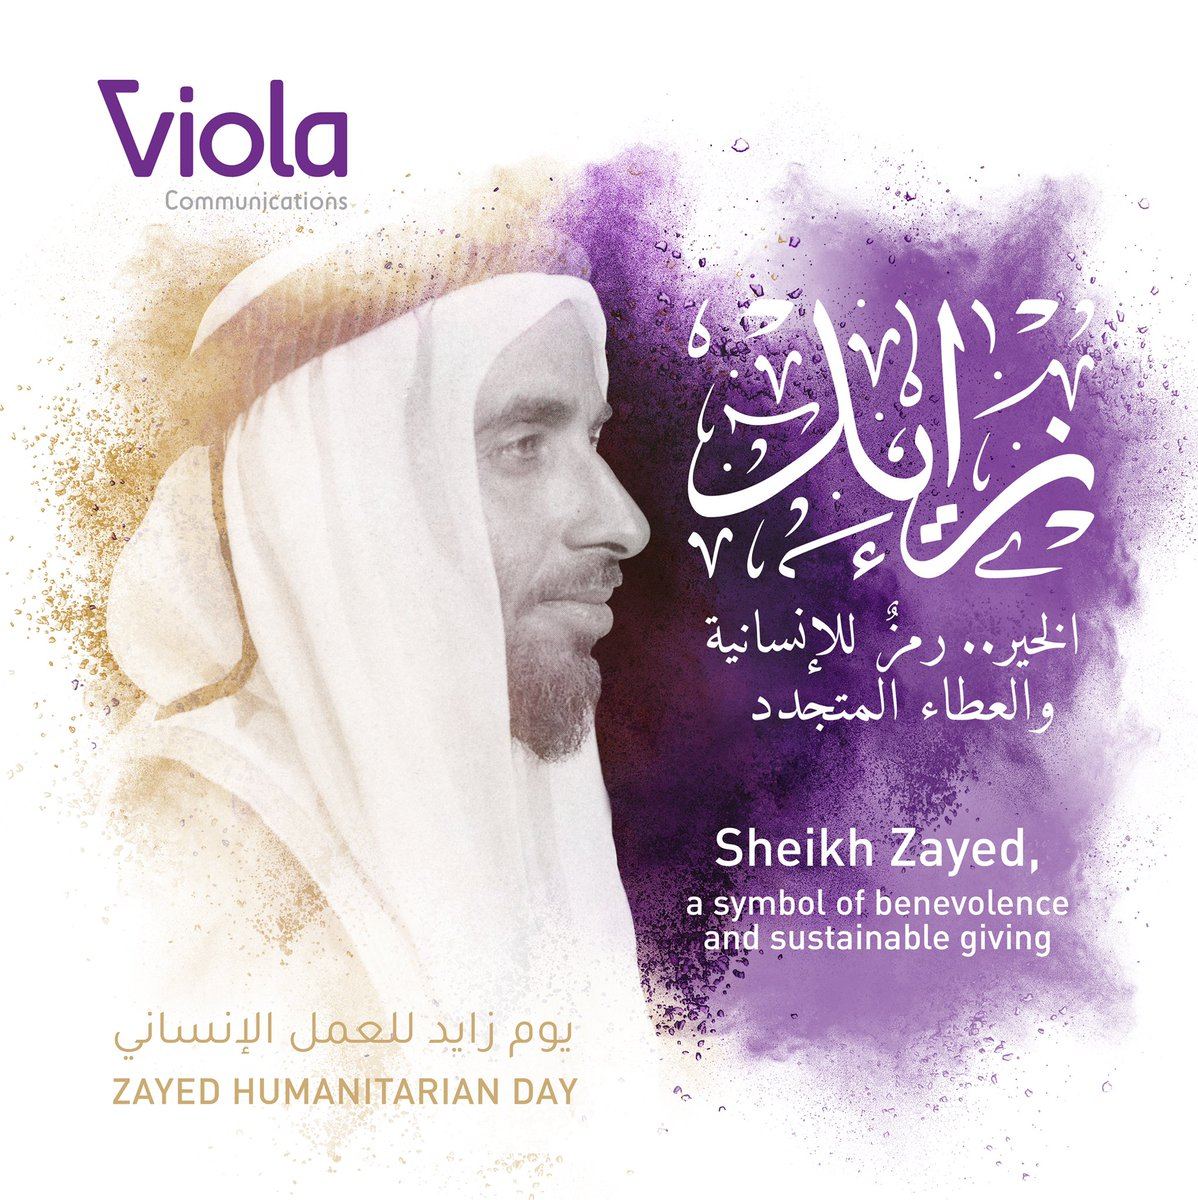 On #ZayedHumanitarianDay, we honor the memory of the late Sheikh Zayed bin Sultan Al Nahyan and his legacy of tolerance and humanitarian giving. #UAE #InAbuDhabi #ViolaCommunications https://t.co/bO4F8k46Ox